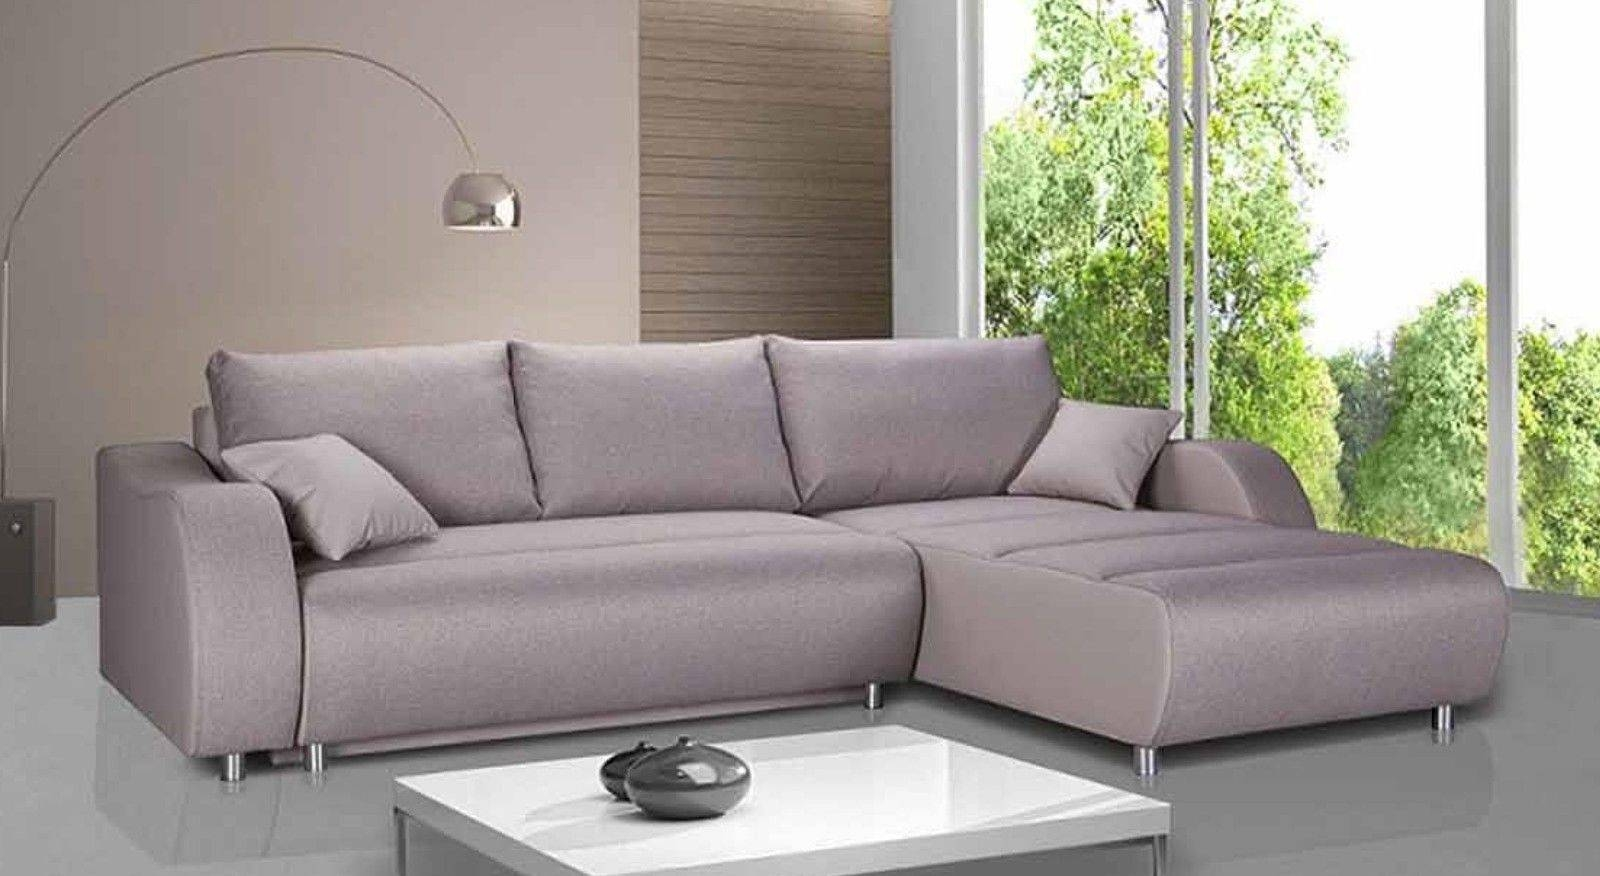 Unusual Sofas Uk - Leather Sectional Sofa in Unusual Sofas (Image 23 of 25)